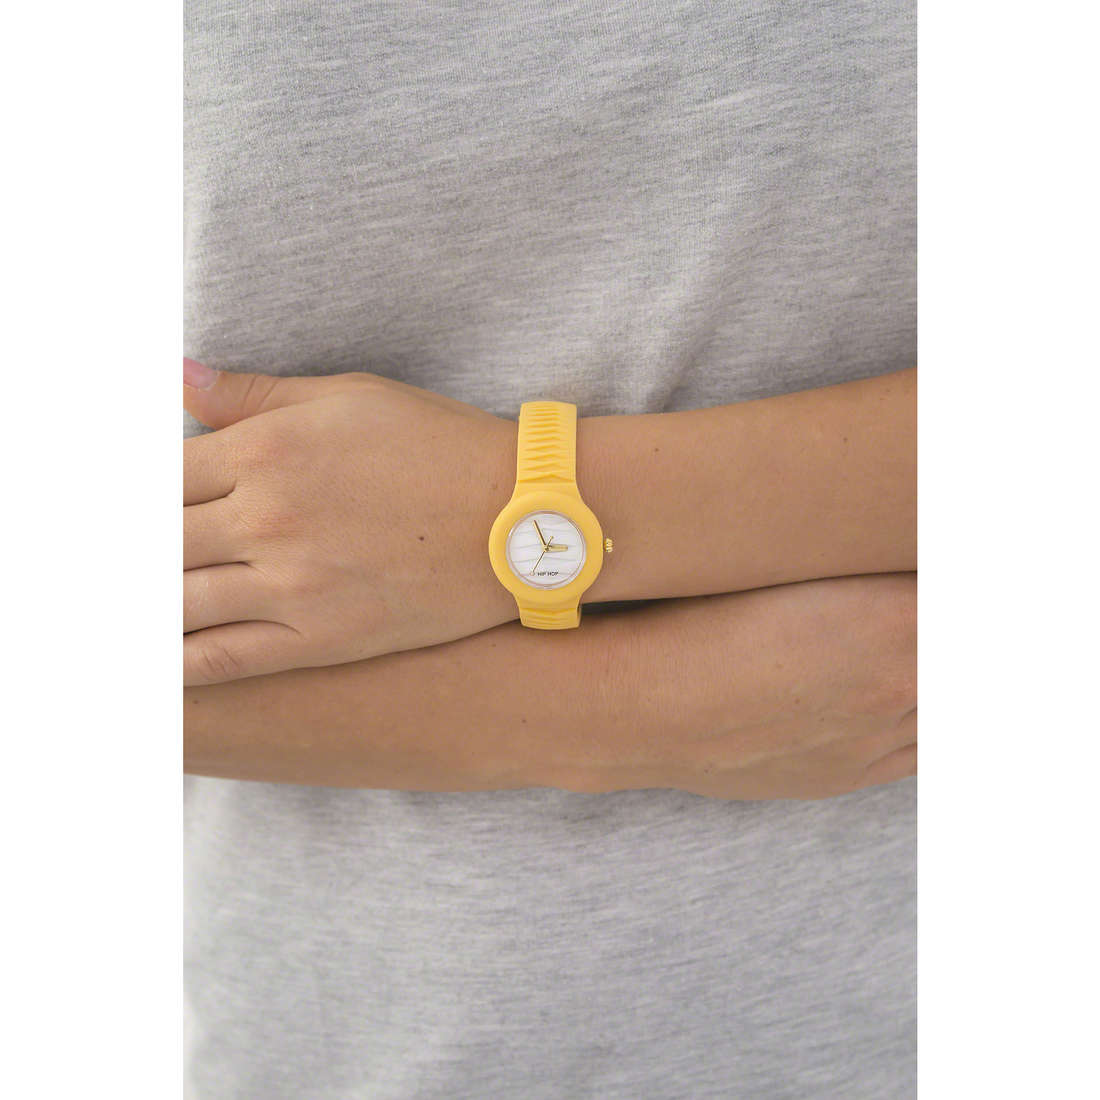 Hip Hop only time Sensoriality woman HWU0521 indosso